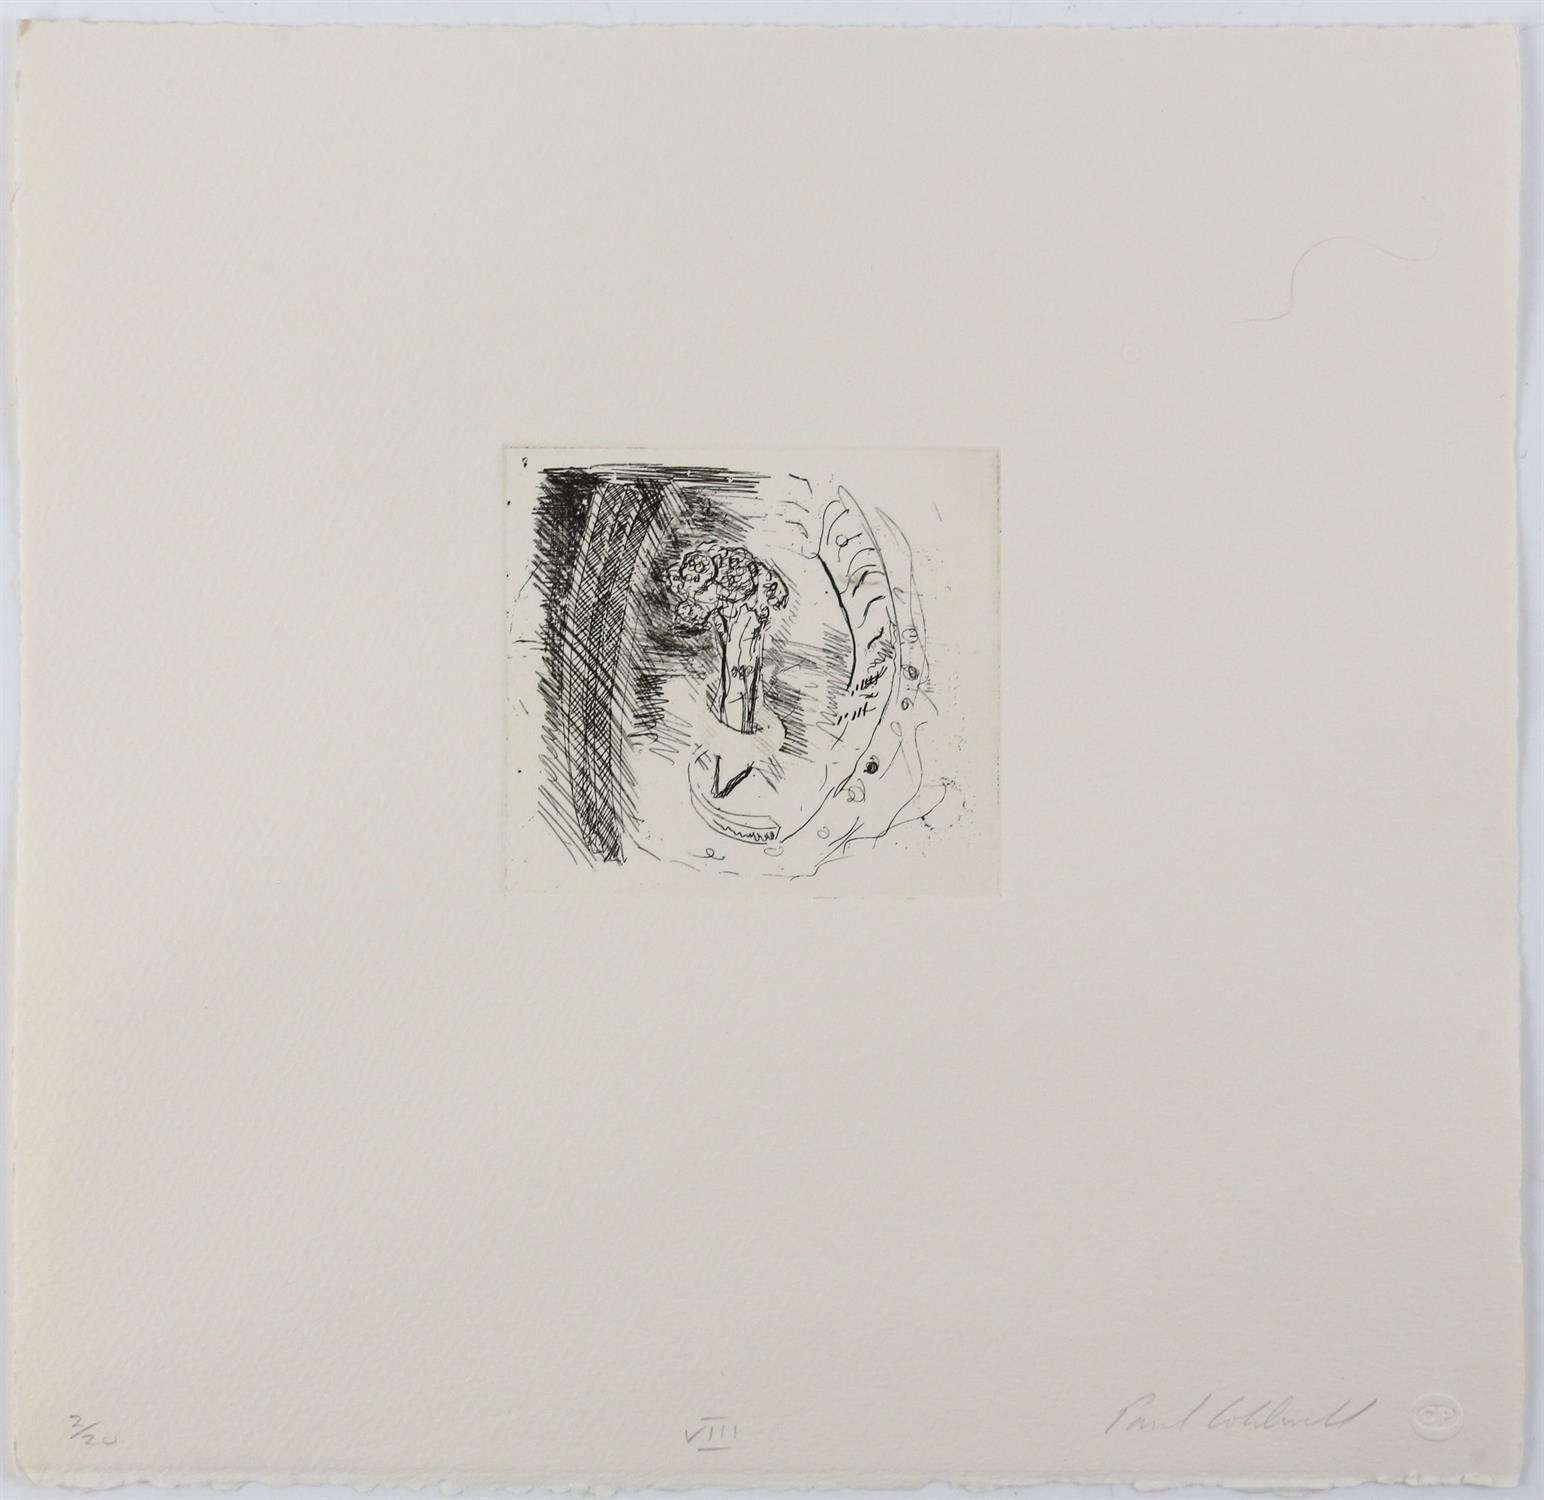 Paul Coldwell (British, b.1952). Three etchings from the 'The Studio' folio, 1988, each signed, - Image 8 of 11